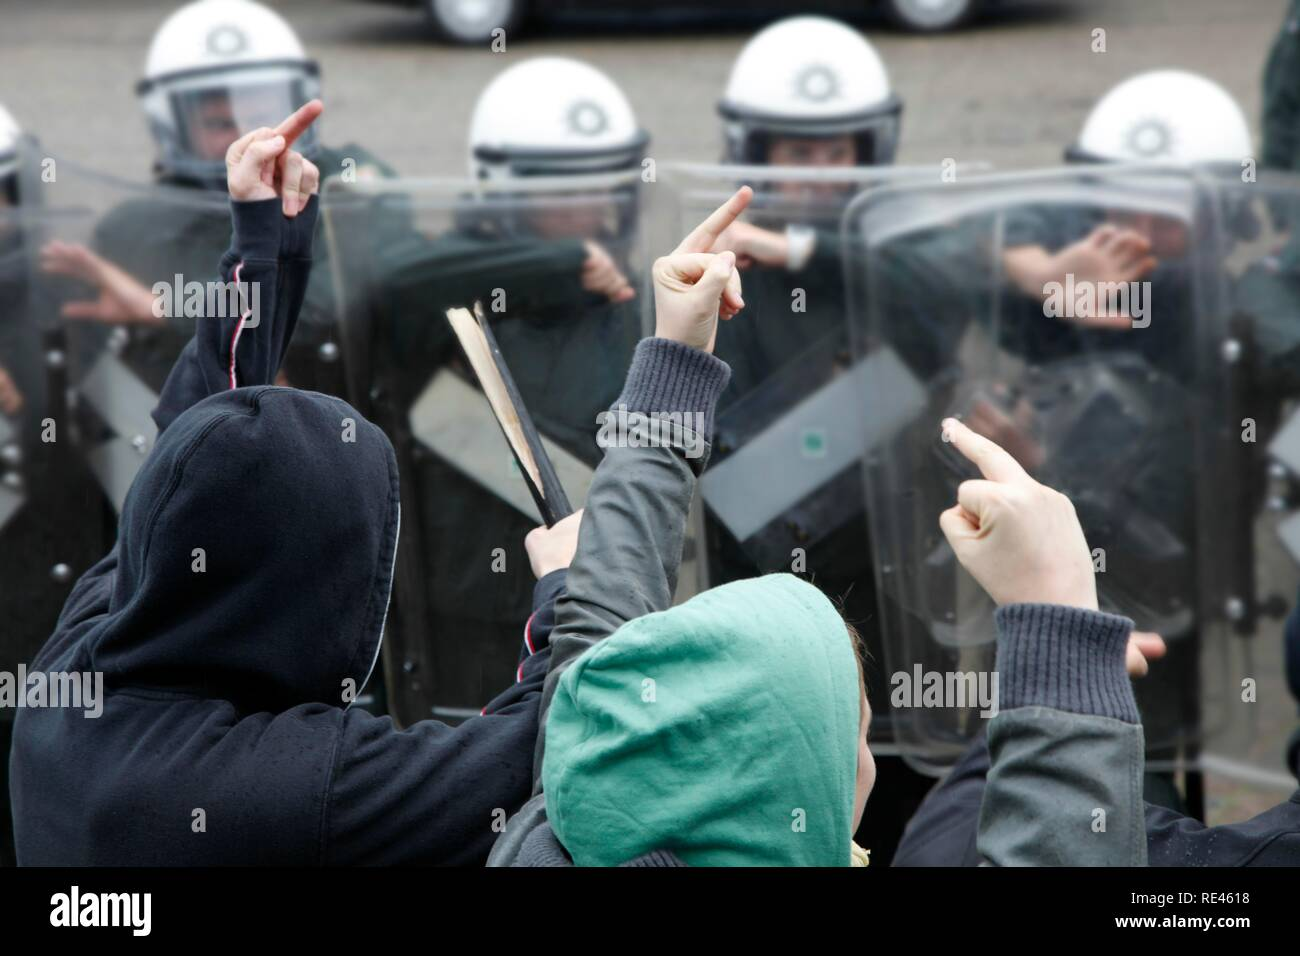 Young police officers learn to deal with violent demonstrators during an exercise, North Rhine-Westphalia - Stock Image